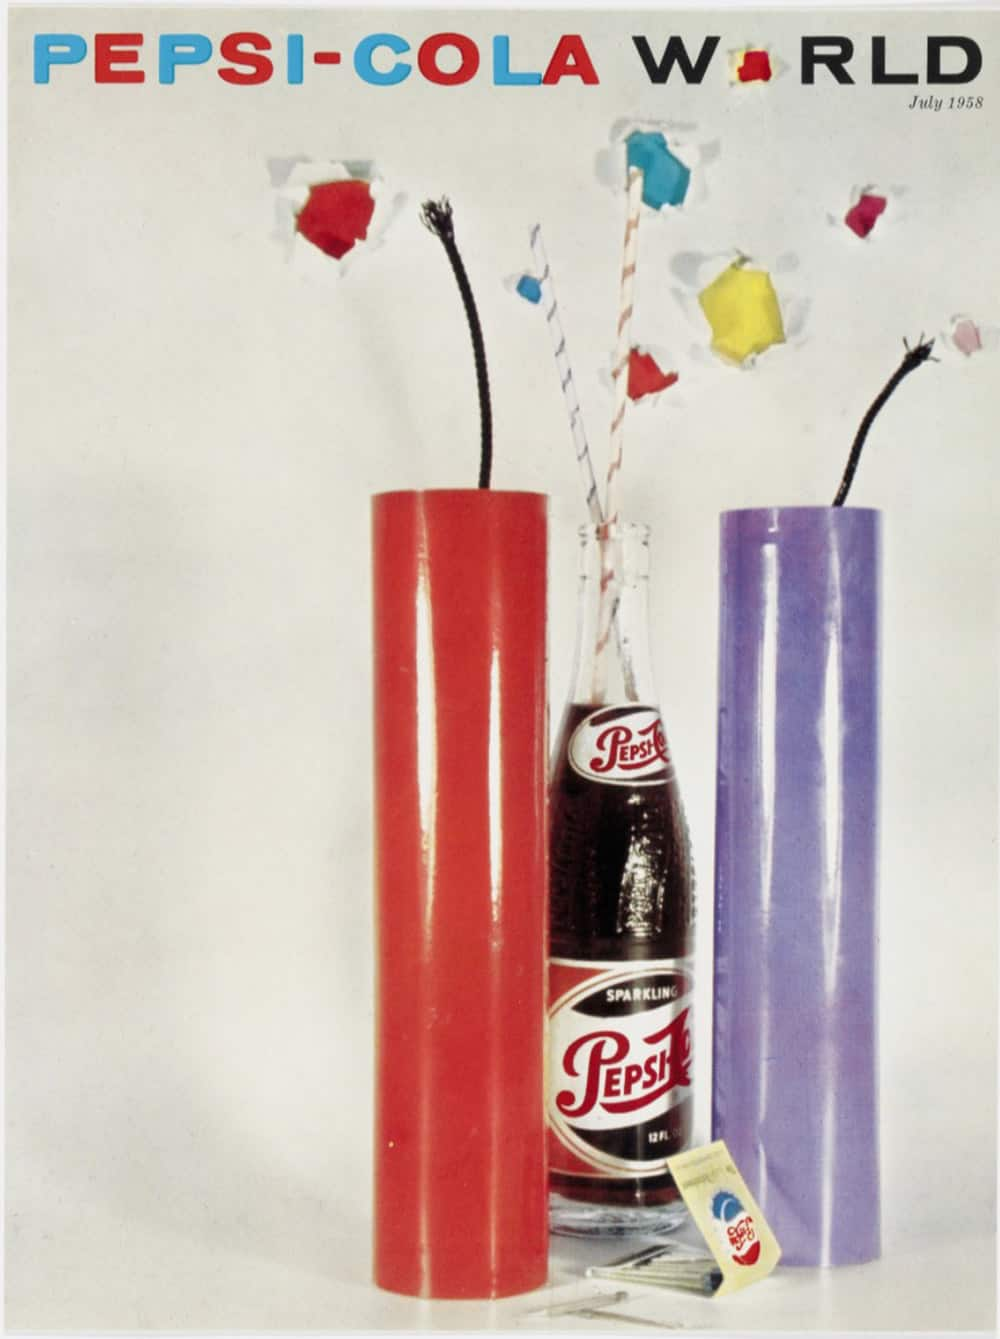 Vintage Pepsi-Cola World Magazine Cover July 1958